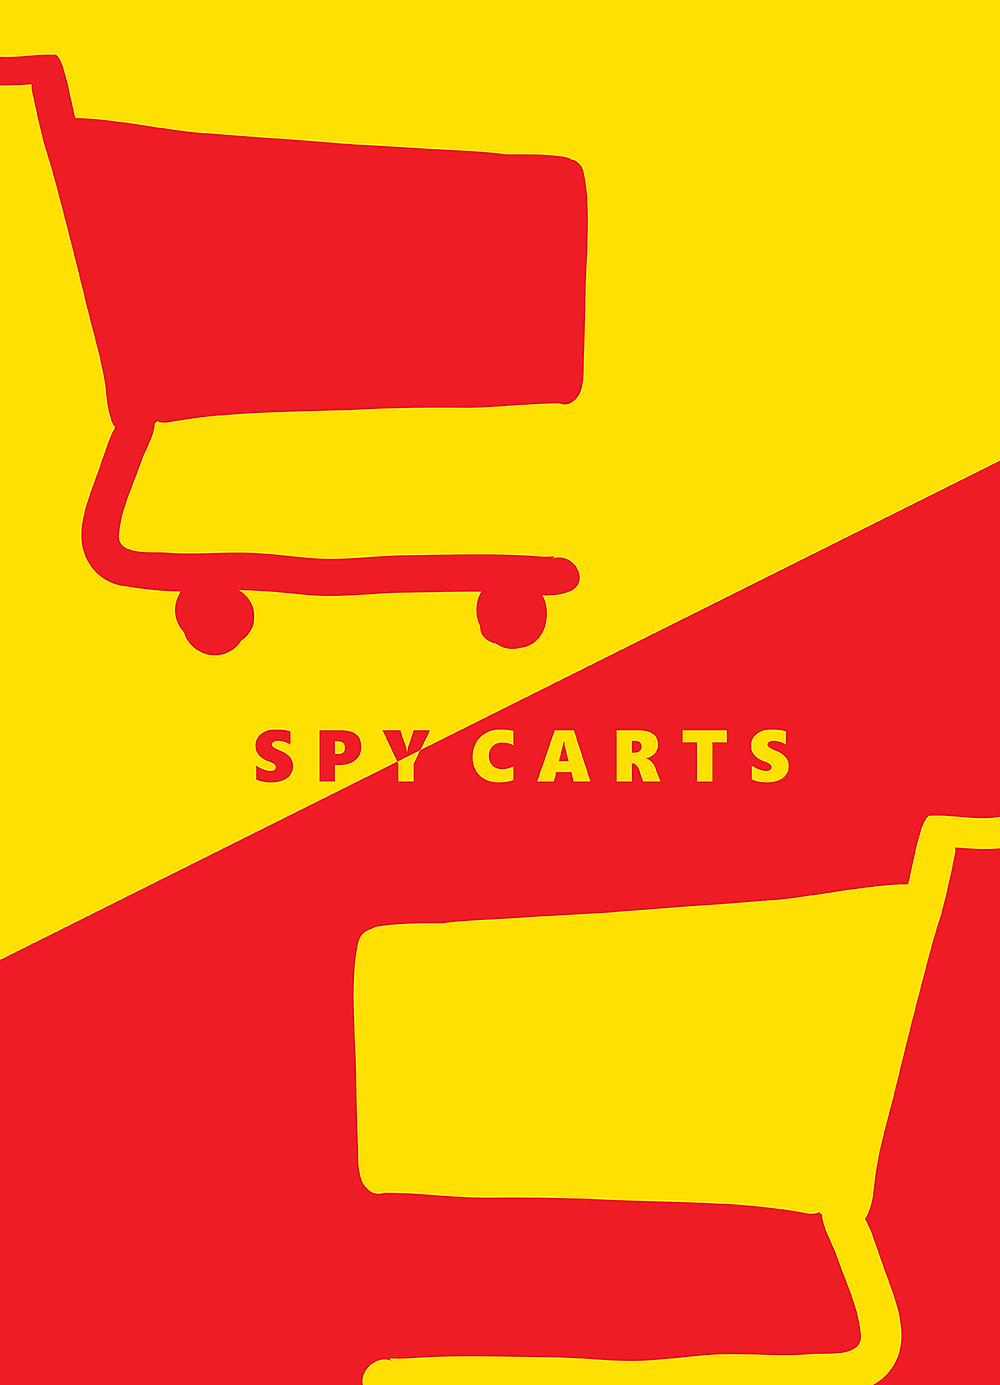 "The main image for Americus Video #8: ""Spy Carts,"" featuring two carts—a red one against a yellow background and a yellow one against a red background."